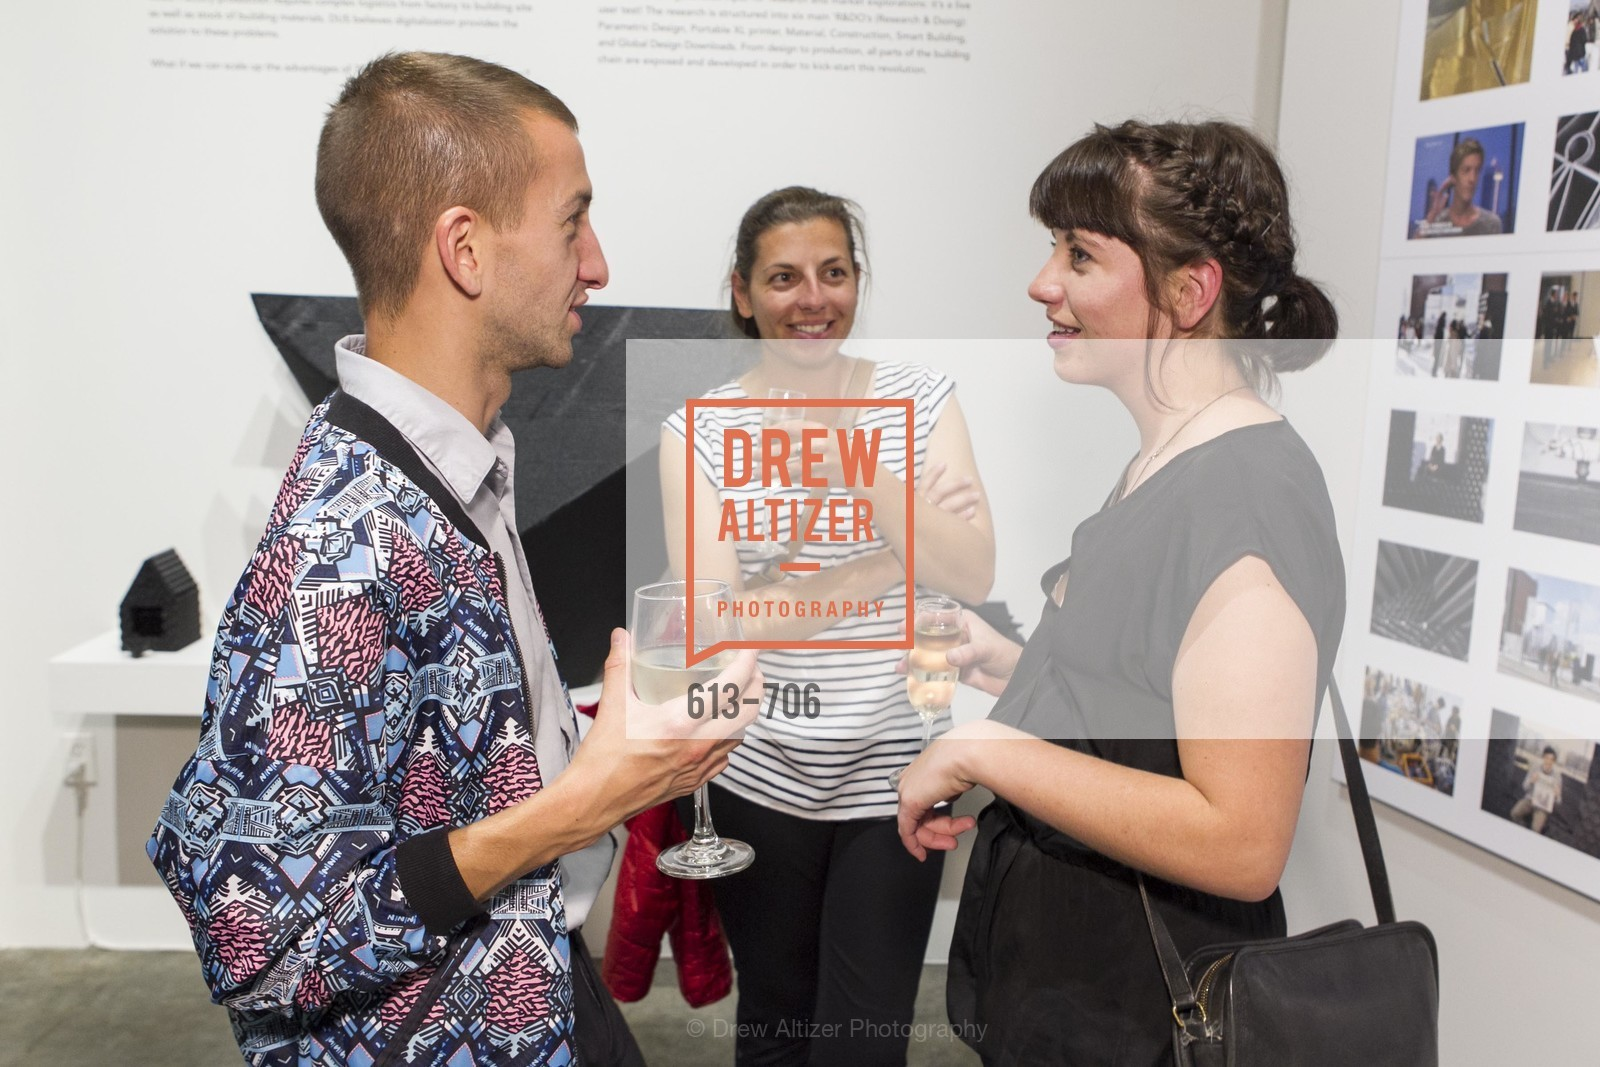 Kaden Freeman, Anne Joiner, Kate Joiner, Exhibit Opening at the MUSEUM OF CRAFT AND DESIGN - Hands Off: New Dutch Design at the Confluence of Technology & Craft, US, May 7th, 2015,Drew Altizer, Drew Altizer Photography, full-service agency, private events, San Francisco photographer, photographer california